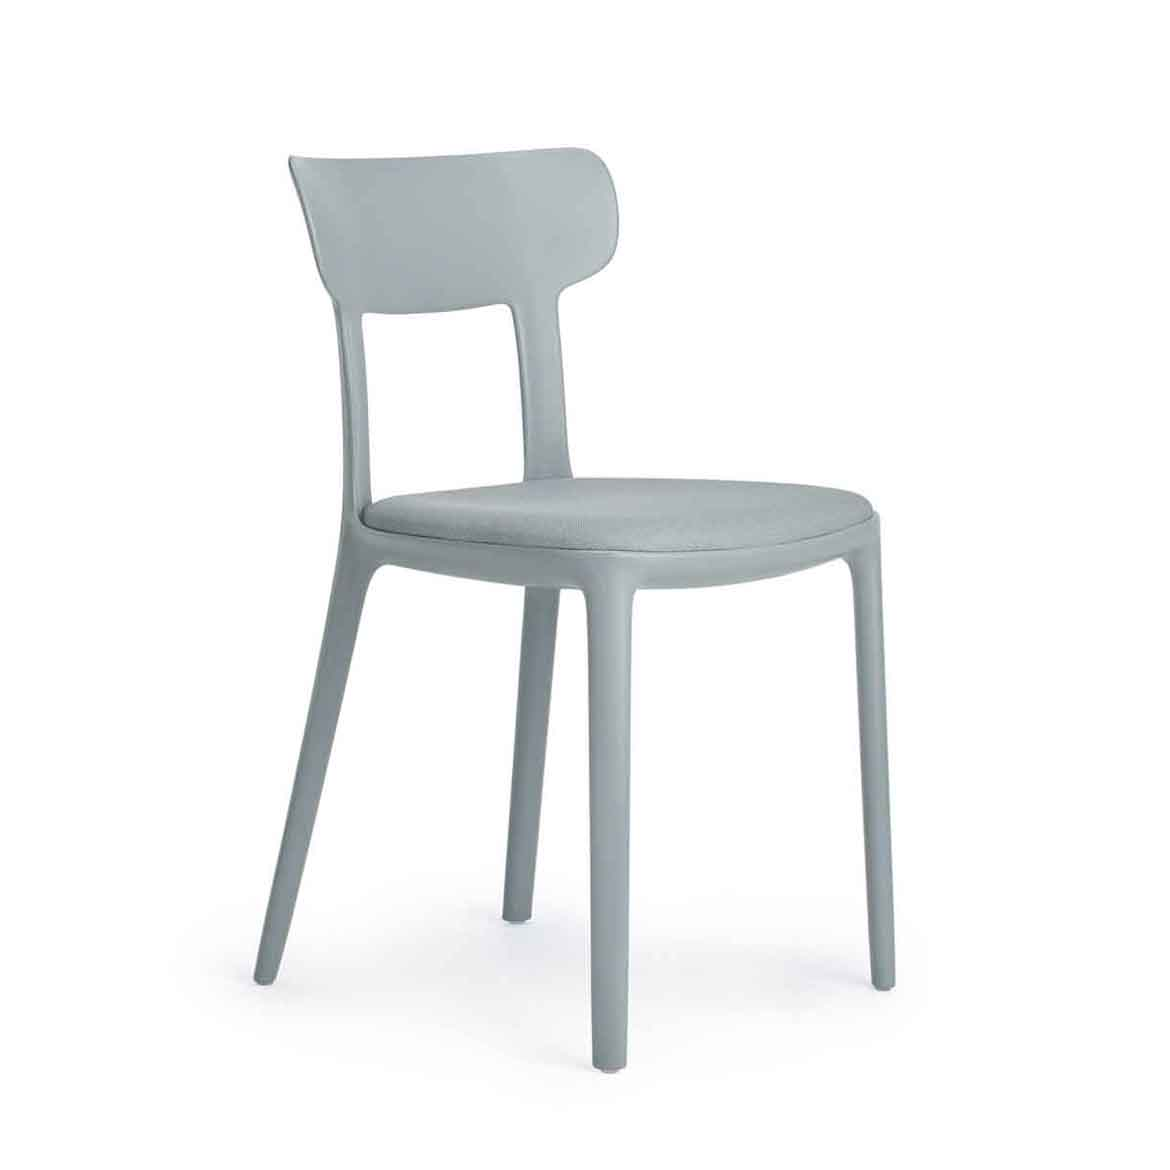 Canova 103 chair